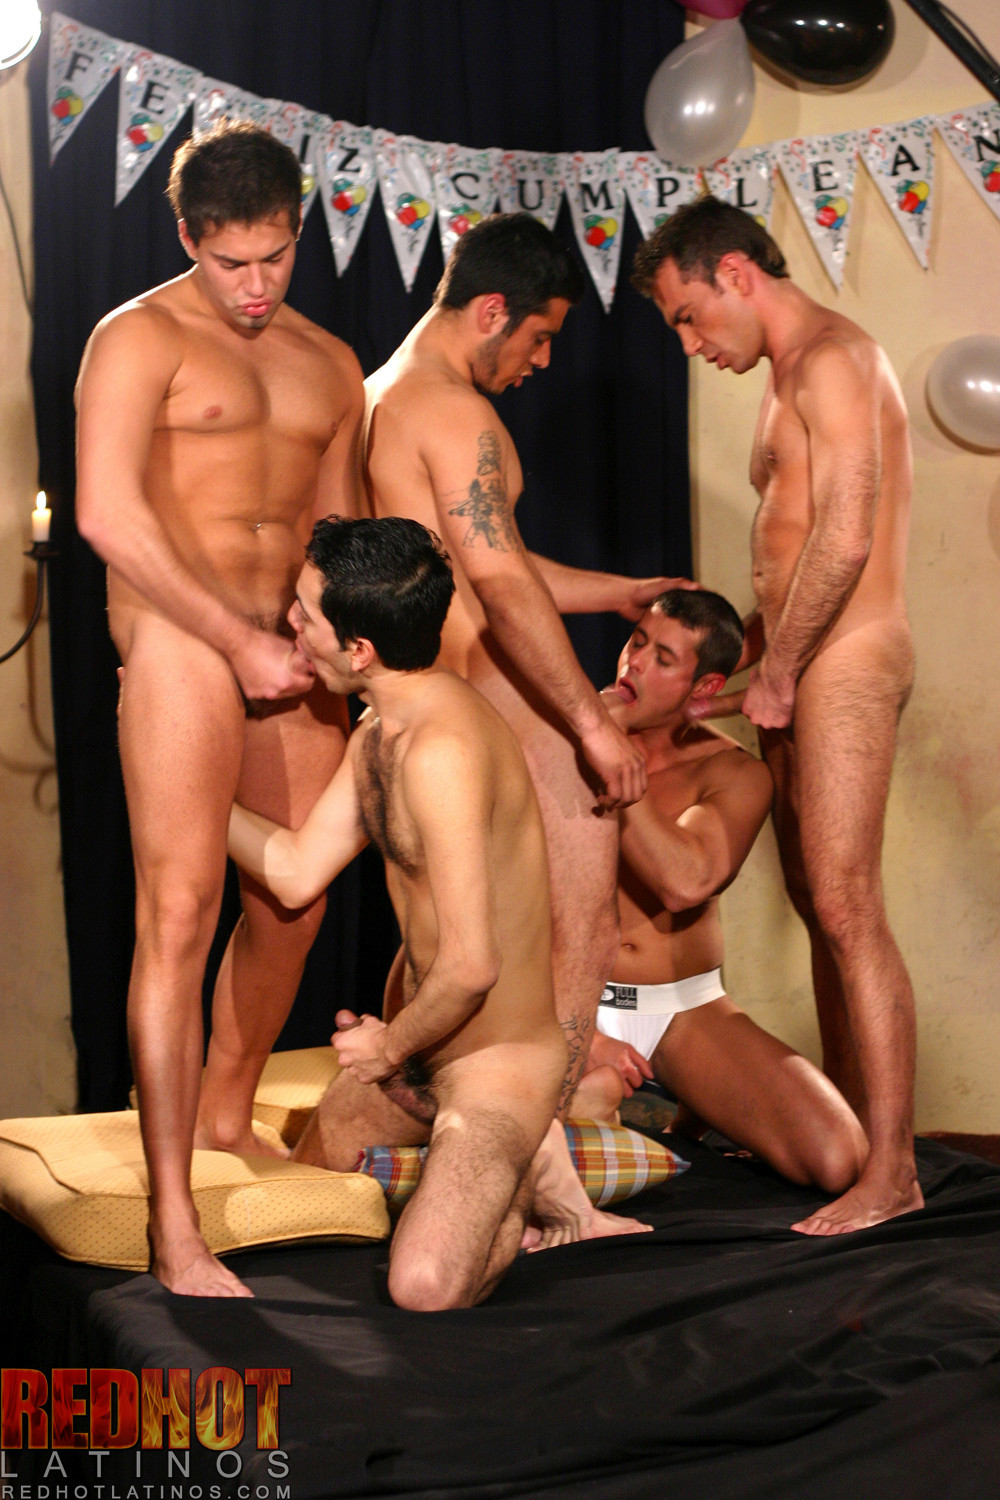 Latino orgy free videos